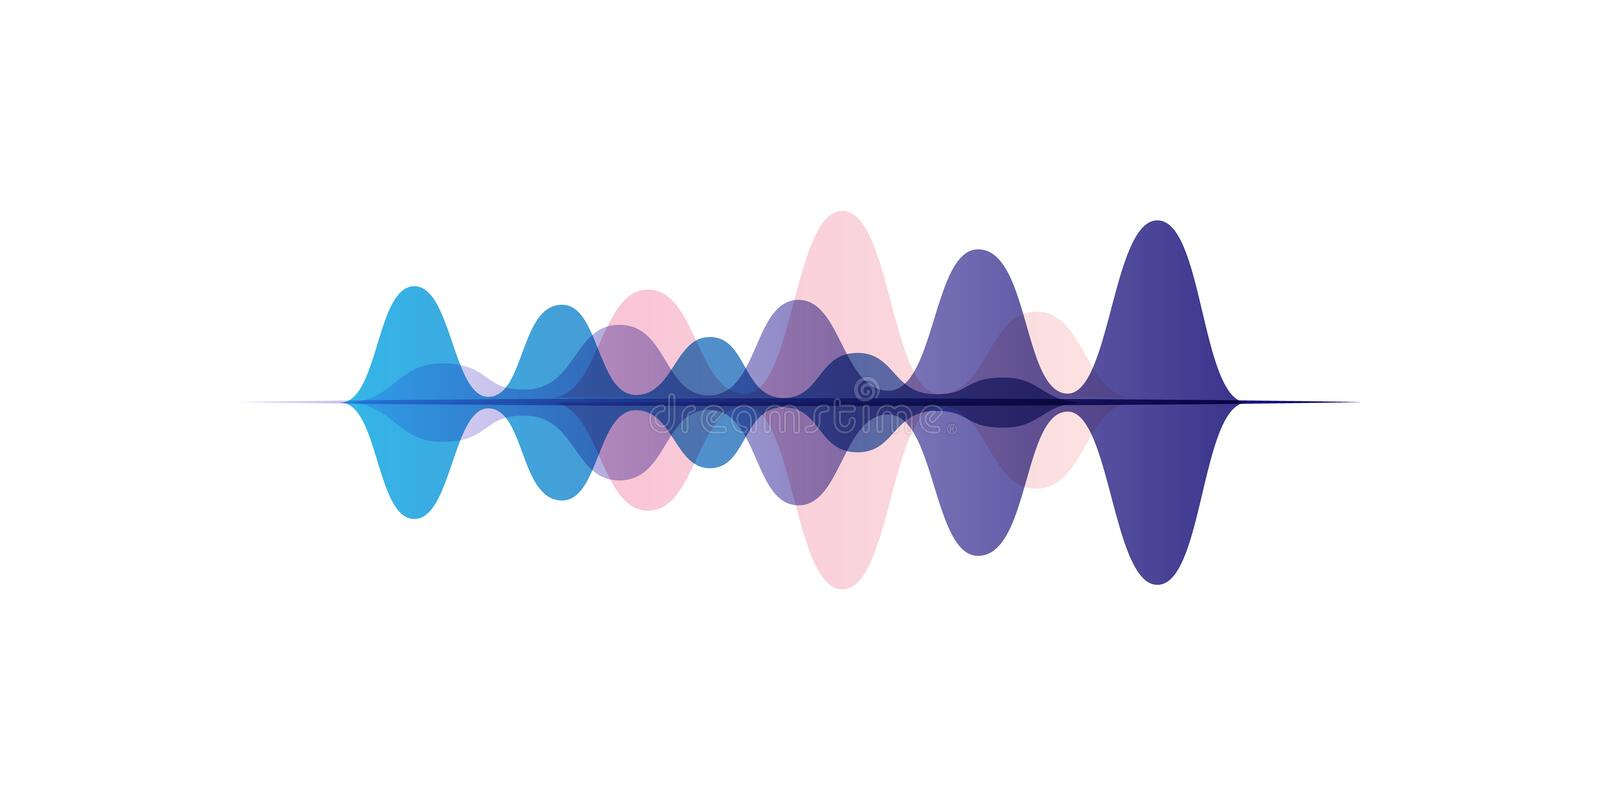 Sound waves of different colors, audio digital equalizer technology, vector Illustration on a white background vector illustration